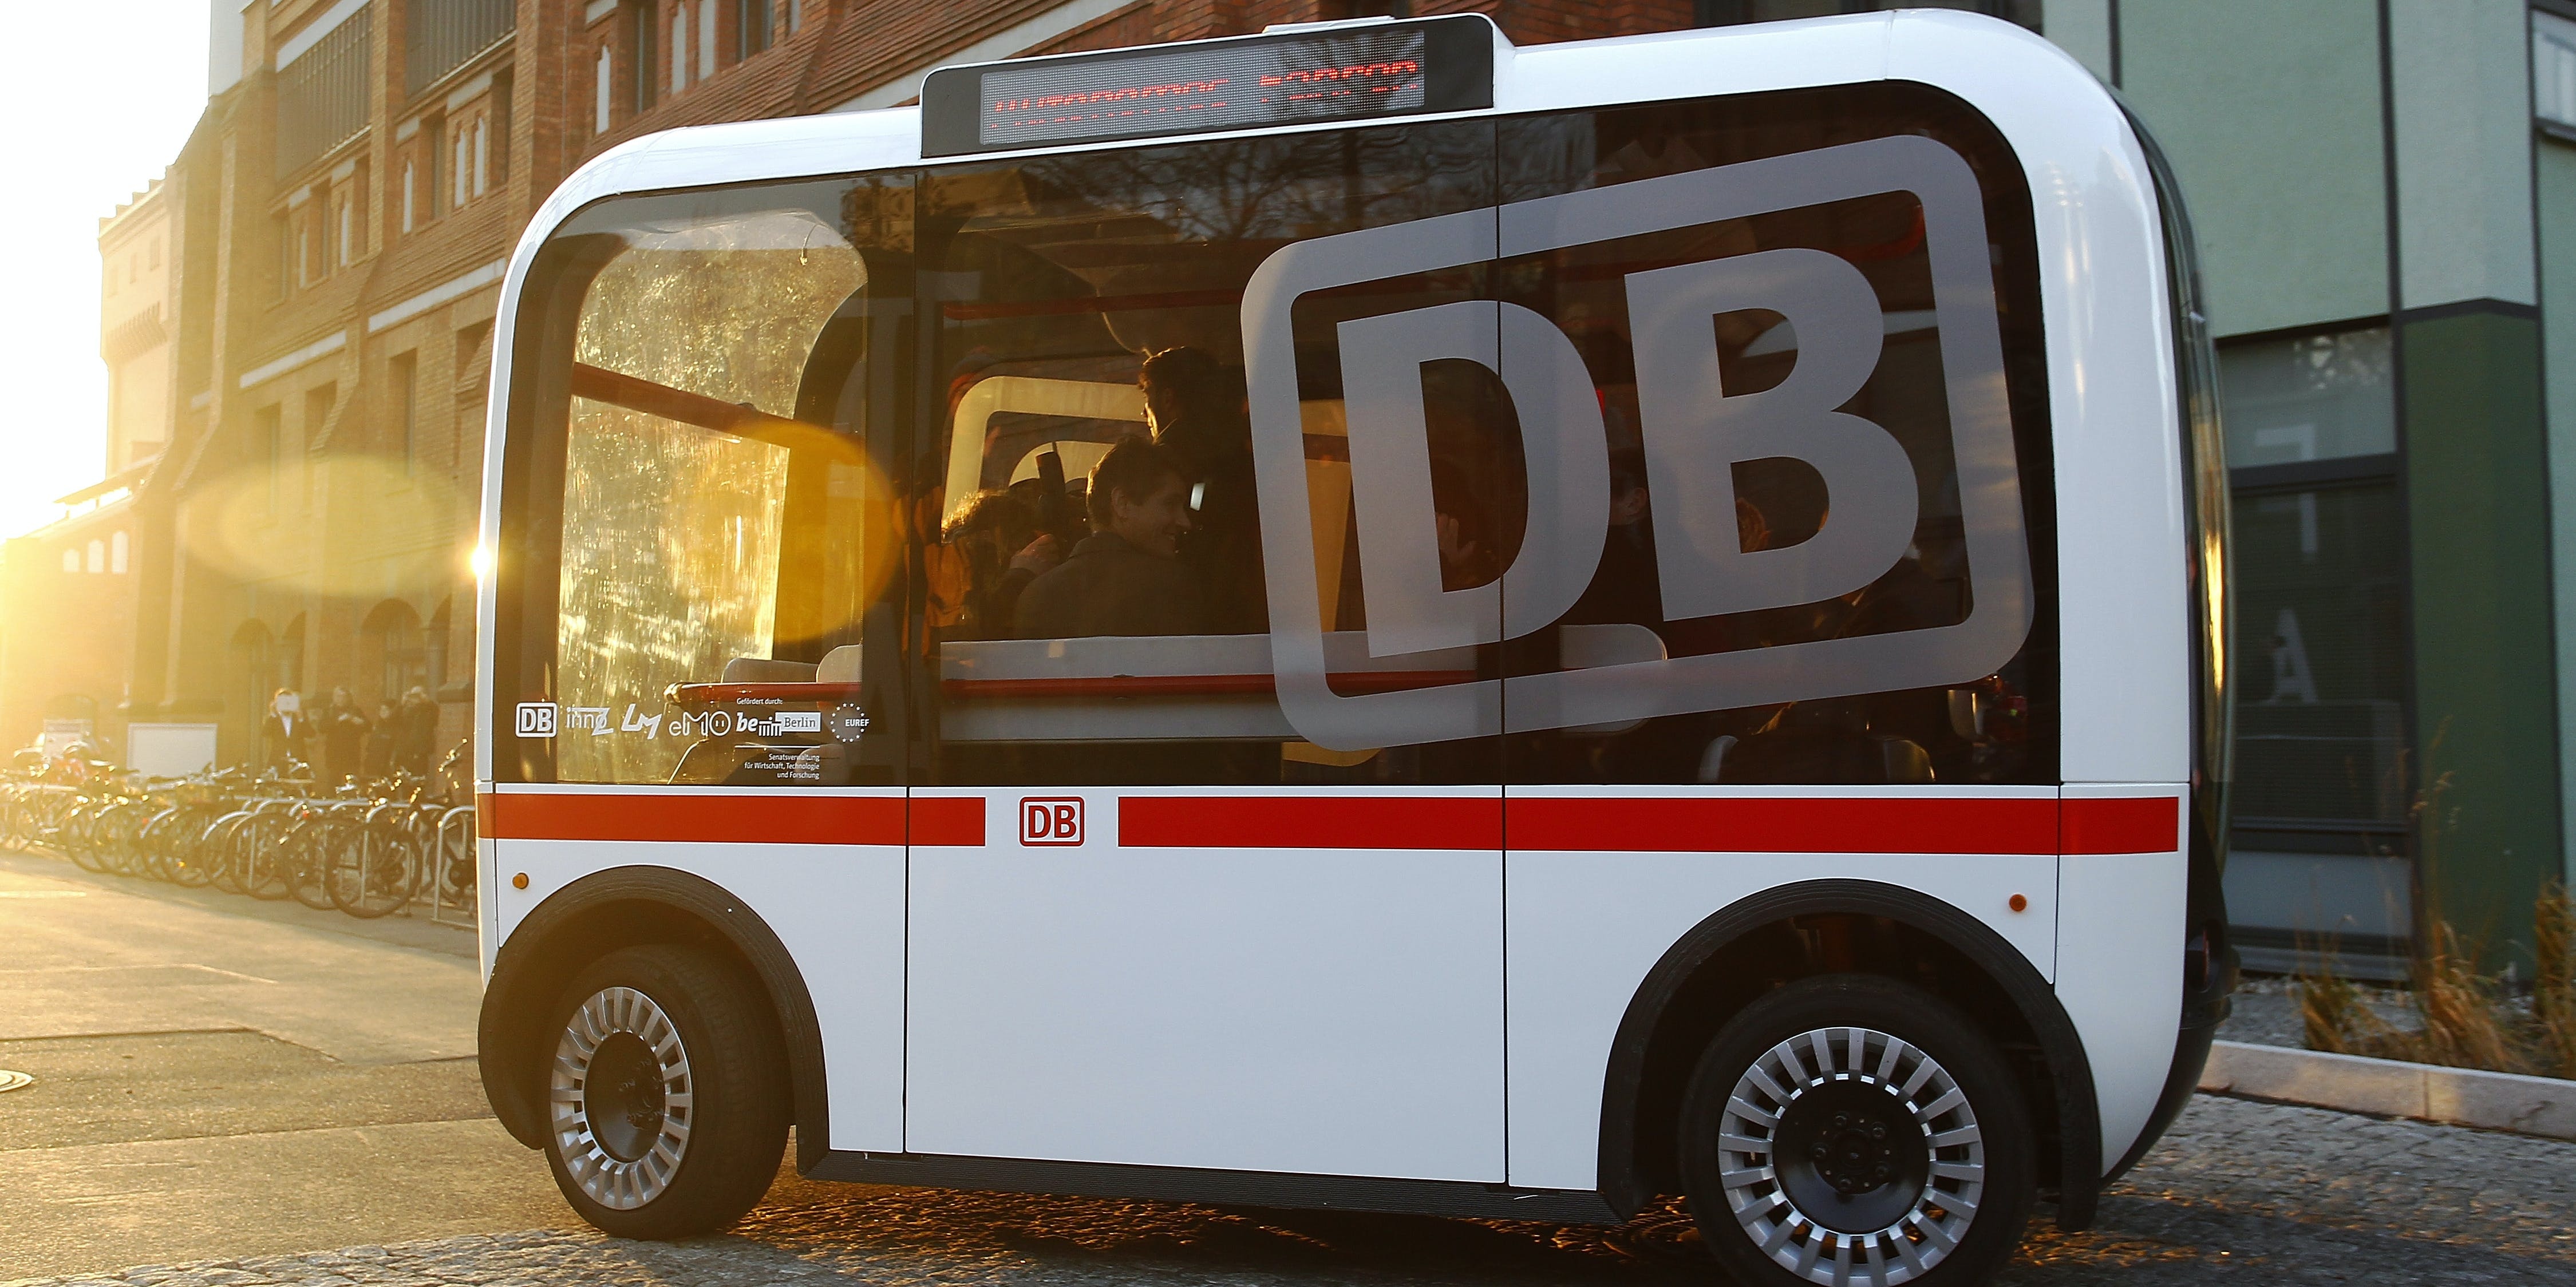 BERLIN, GERMANY - DECEMBER 16:  German Transport Minister Alexander Dobrindt and Deutsche Bahn head Ruediger Grube sit in a self driving Bus during  the presentation of a pilot project by Deutsche Bahn to demonstrate a self-driving public bus on December 16, 2016 in Berlin, Germany. The project is a collaboration between Deutsche Bahn and Berlin's Technical University at the university's EUREF campus.  (Photo by Michele Tantussi/Getty Images)